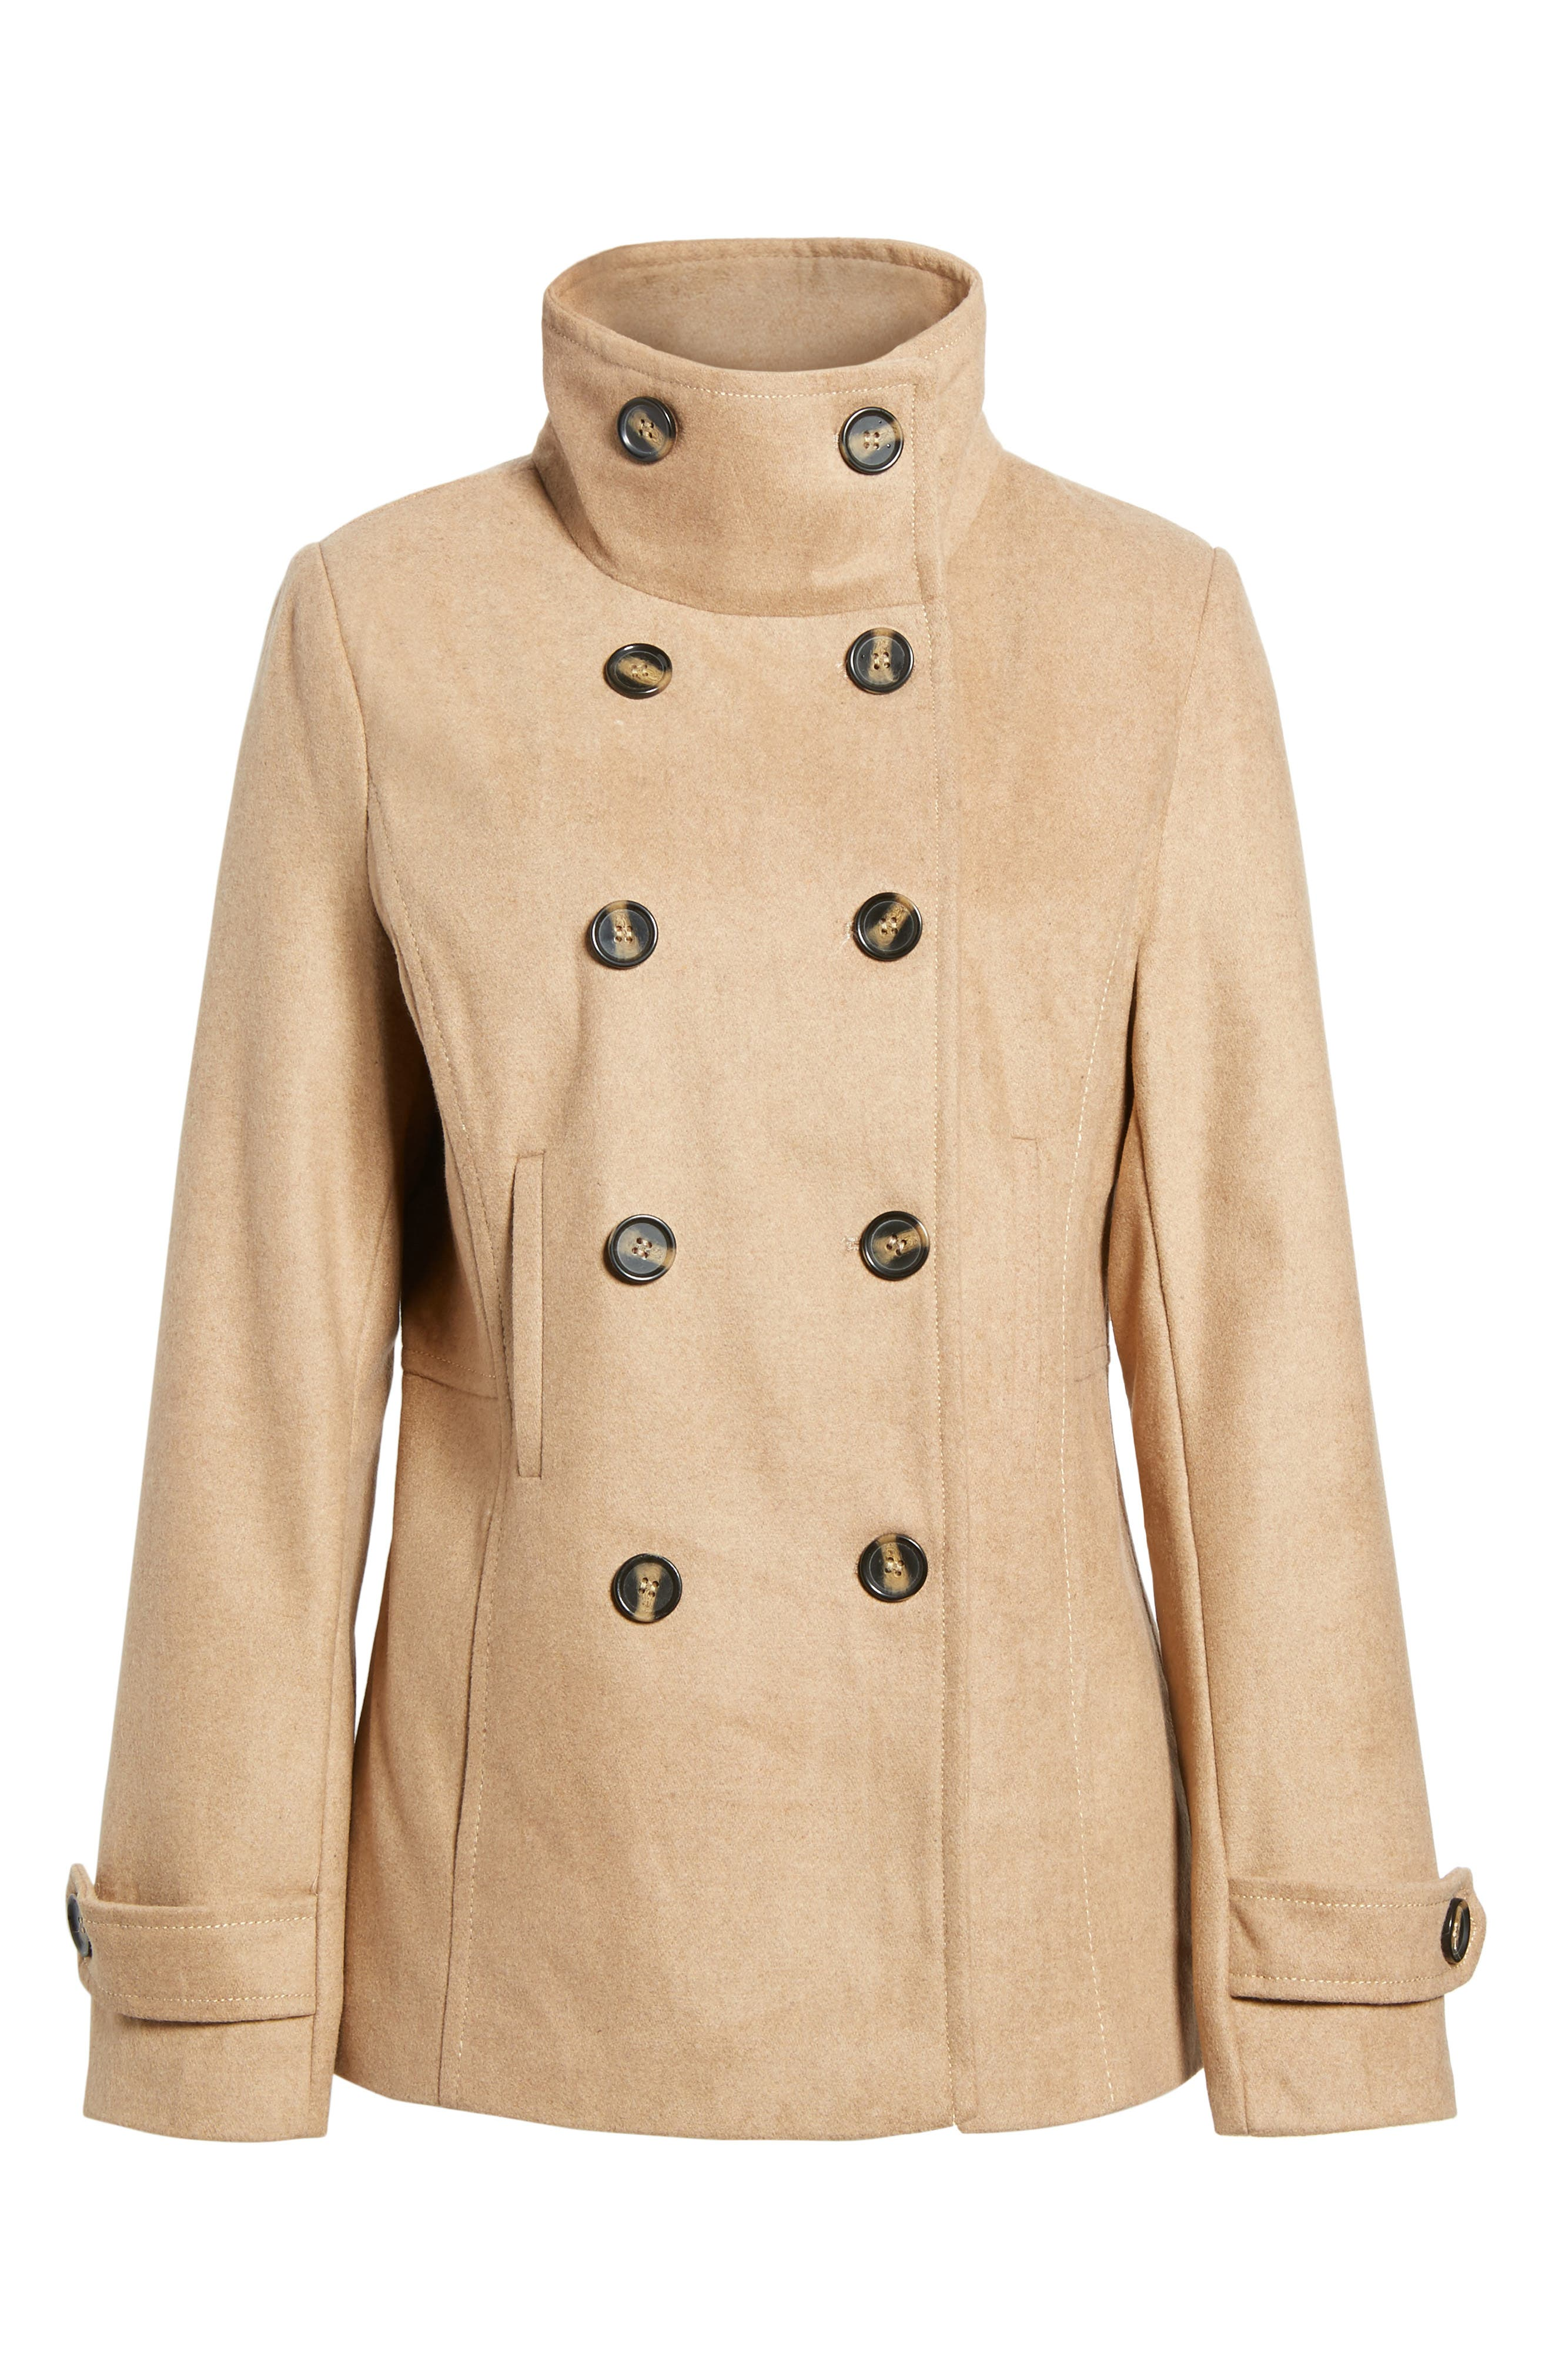 THREAD & SUPPLY, Double Breasted Peacoat, Main thumbnail 1, color, 200